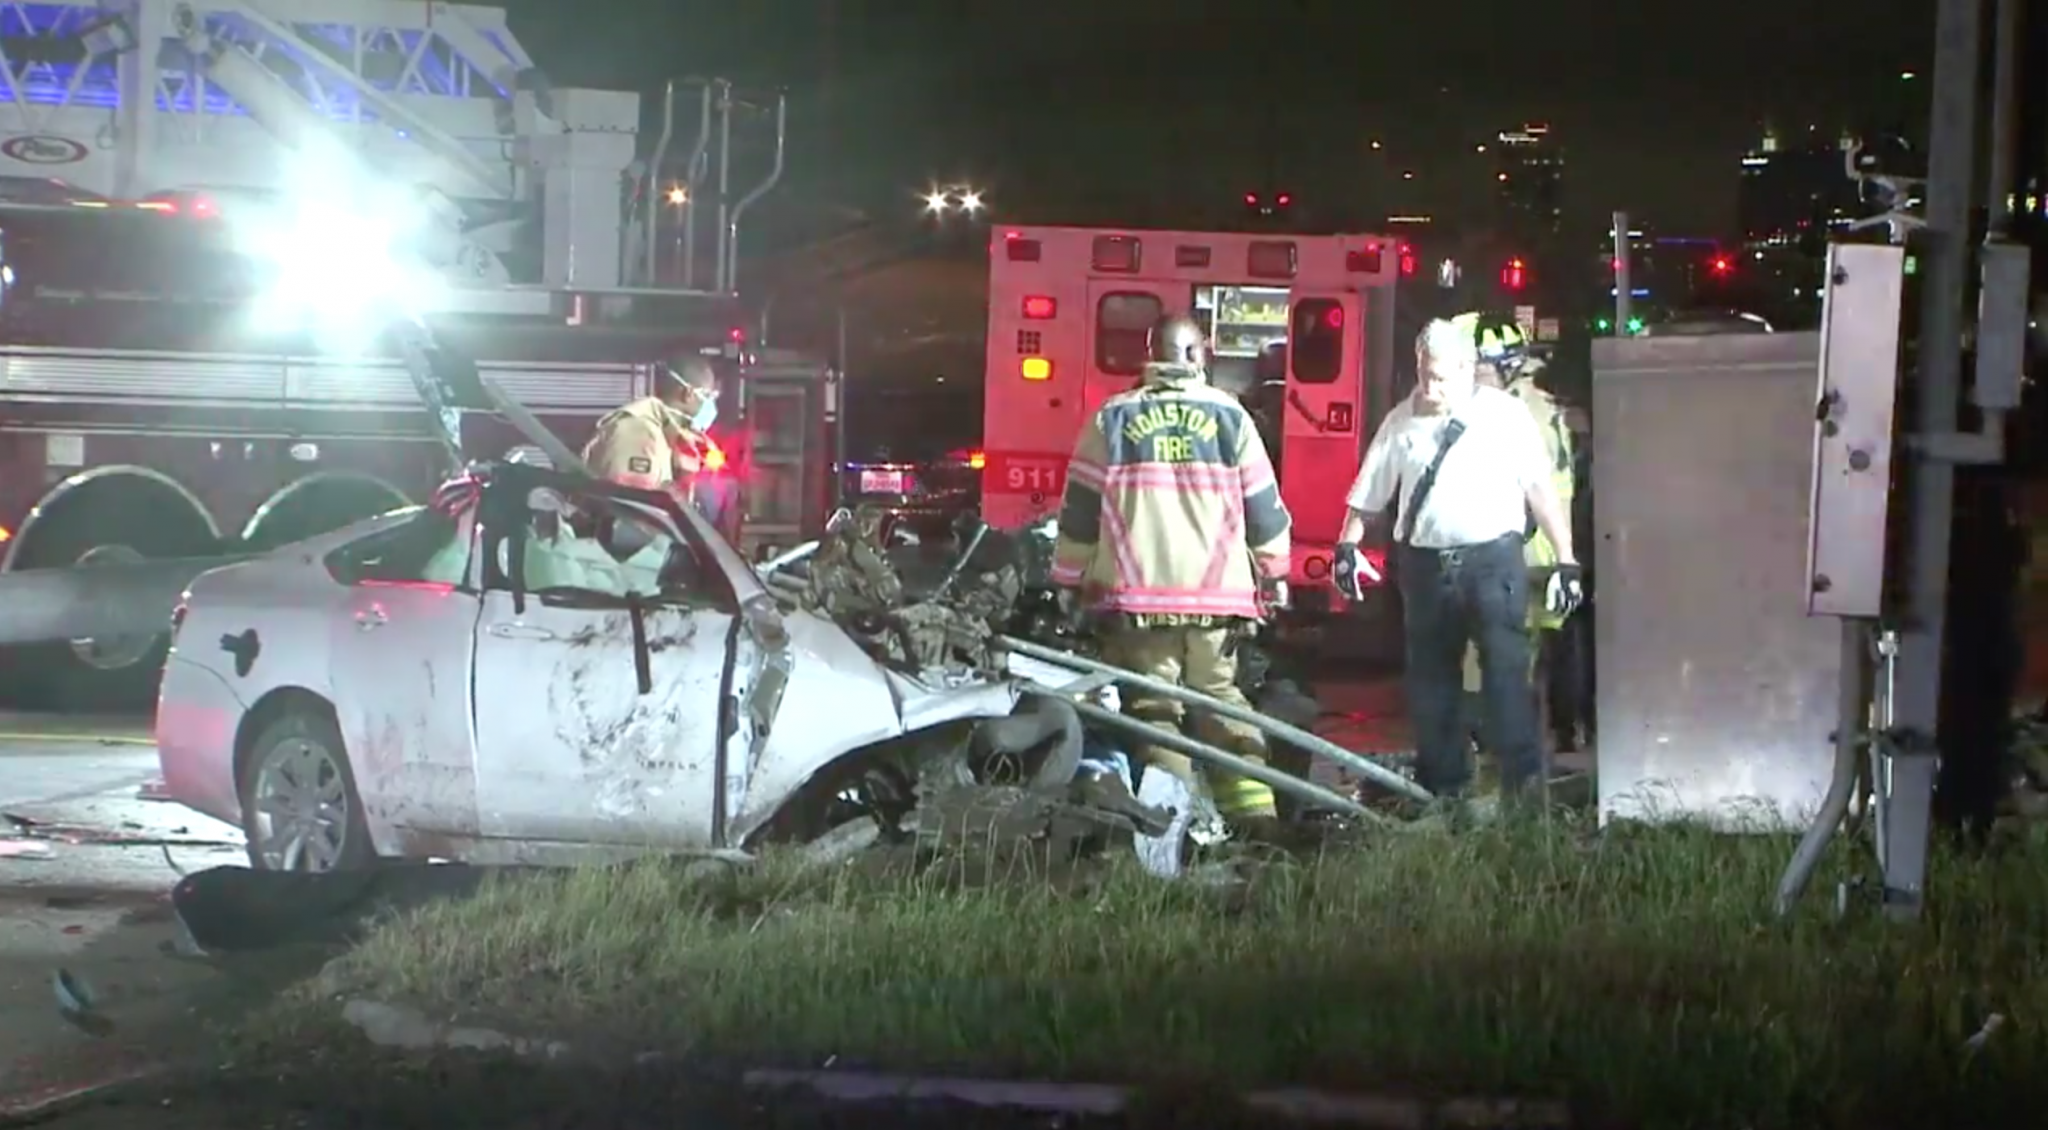 2 in critical condition after car splits in half in crash in front of Houston fire station